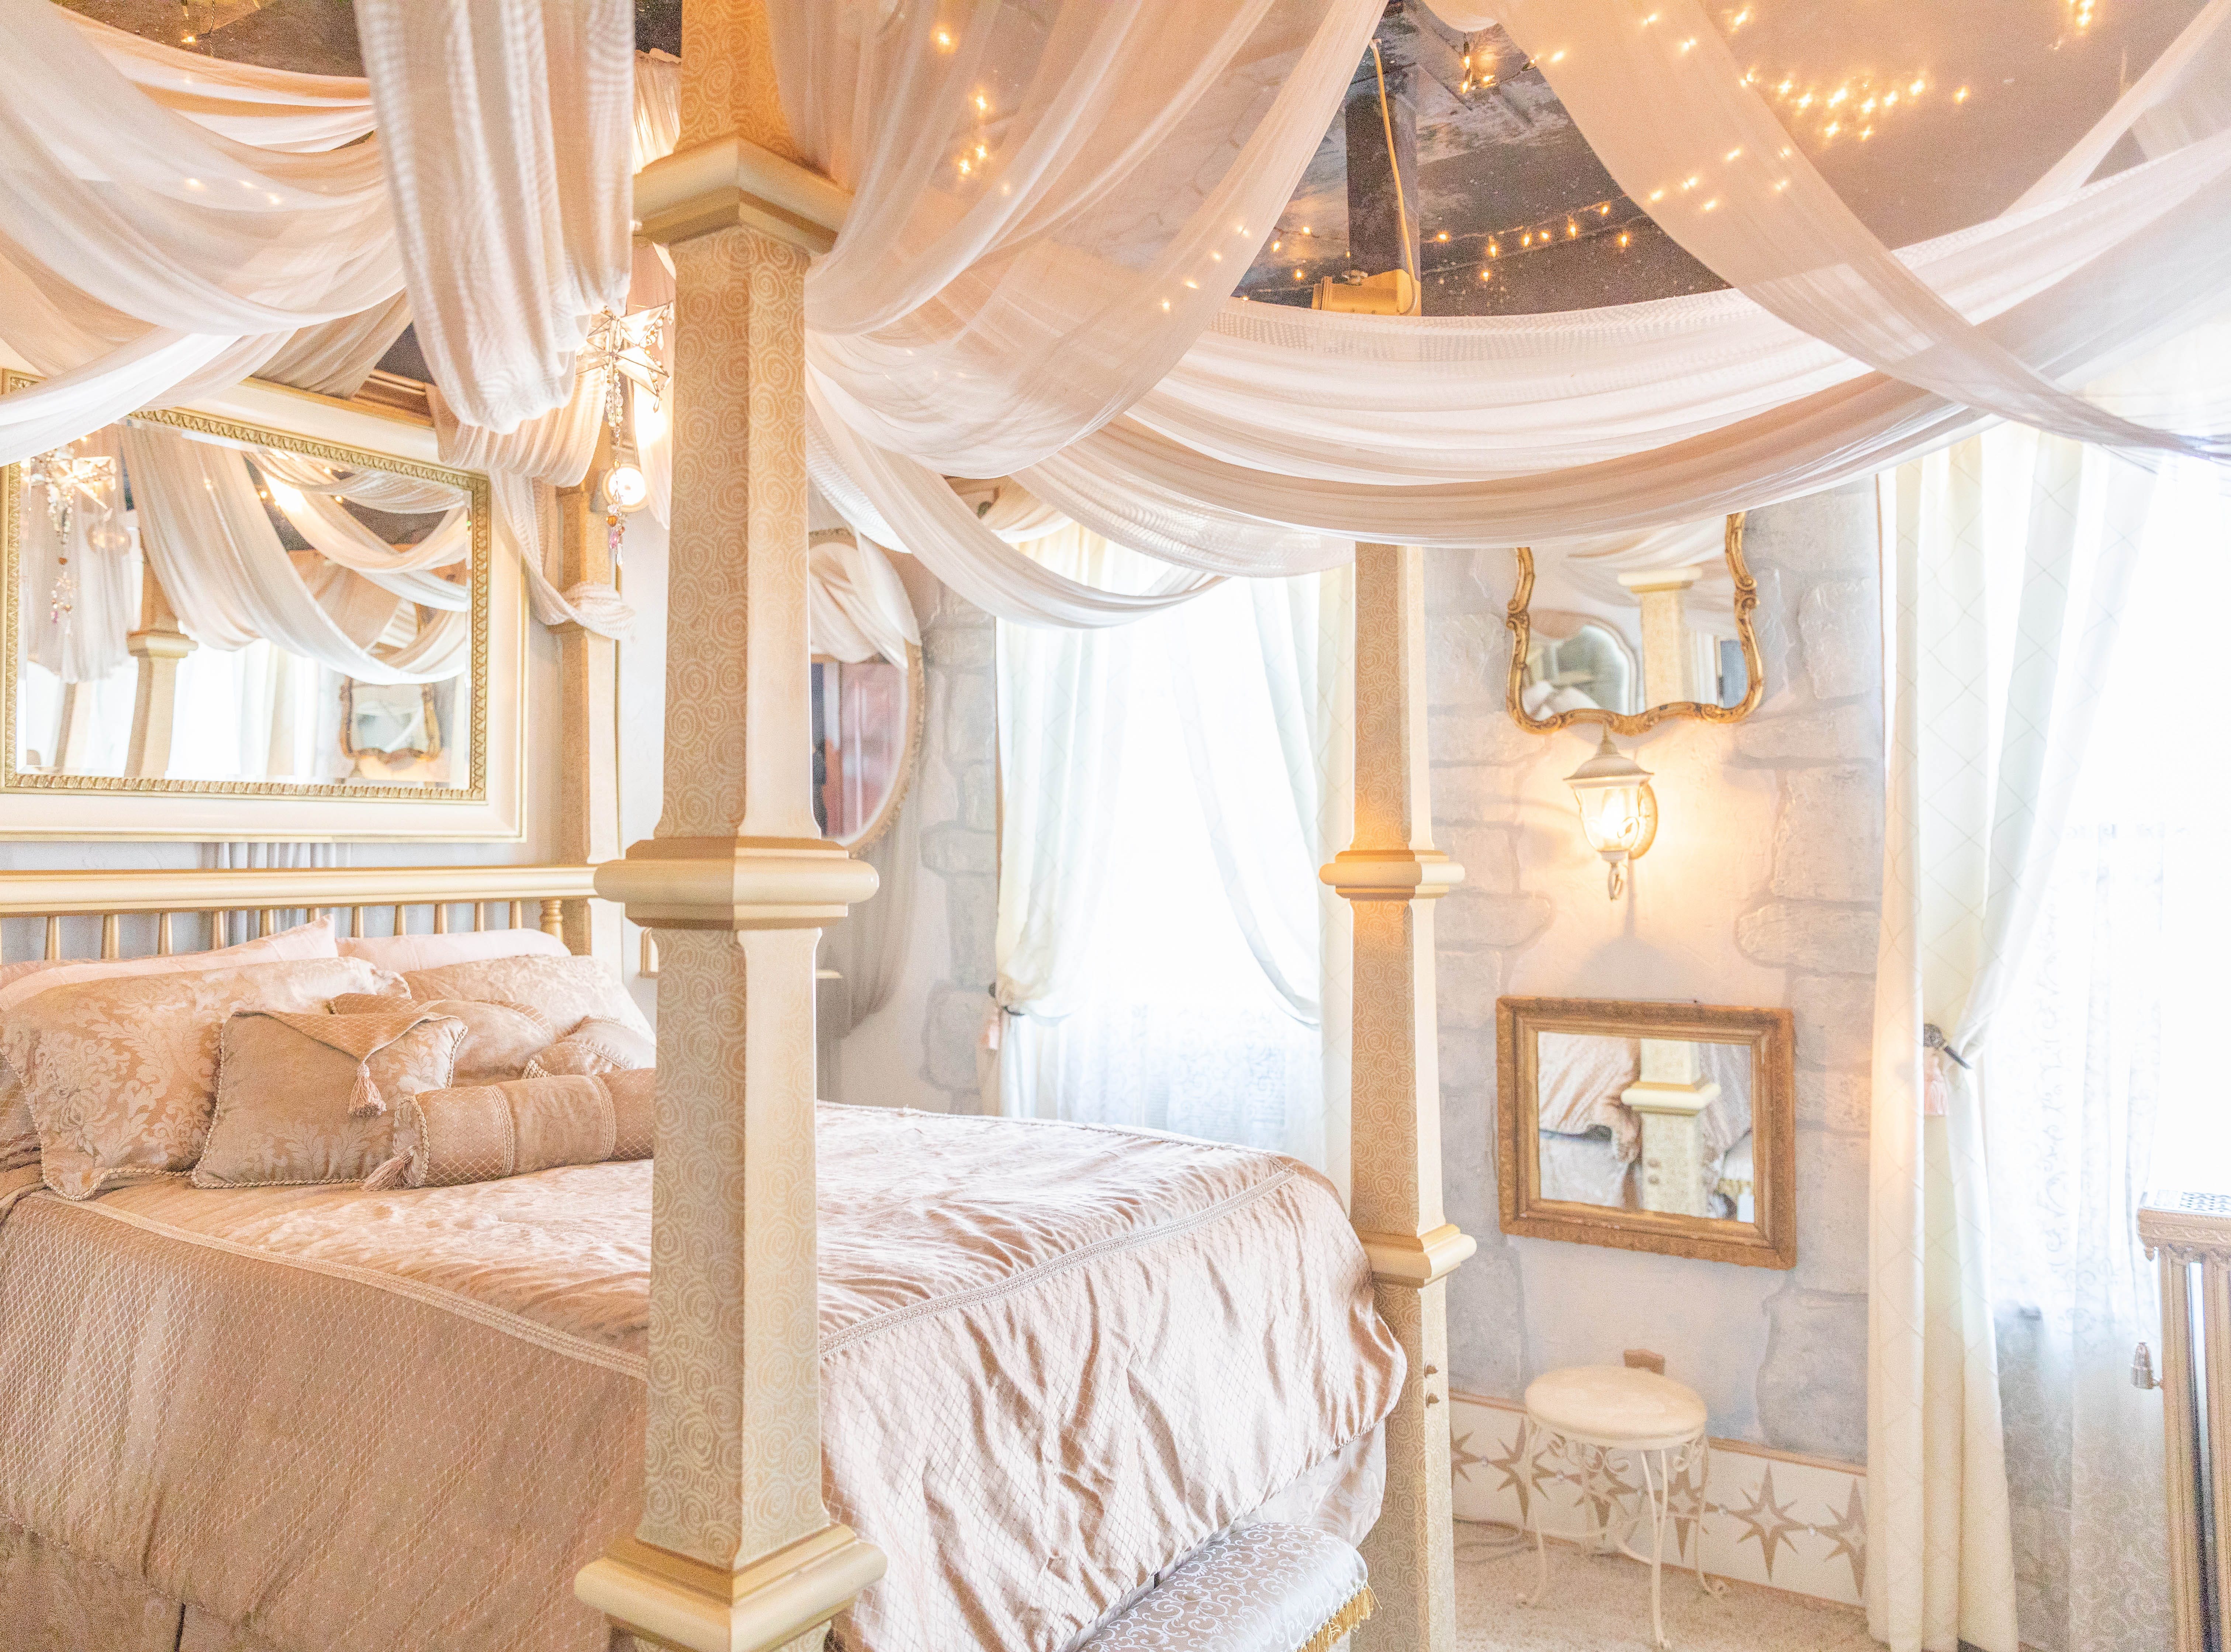 """Inside the  """"Good Princess"""" room at Bube's Brewery in Mt. Joy. The third floor of the Victorian hotel is home to 8 speciality themed rooms and a """"grand suite."""""""